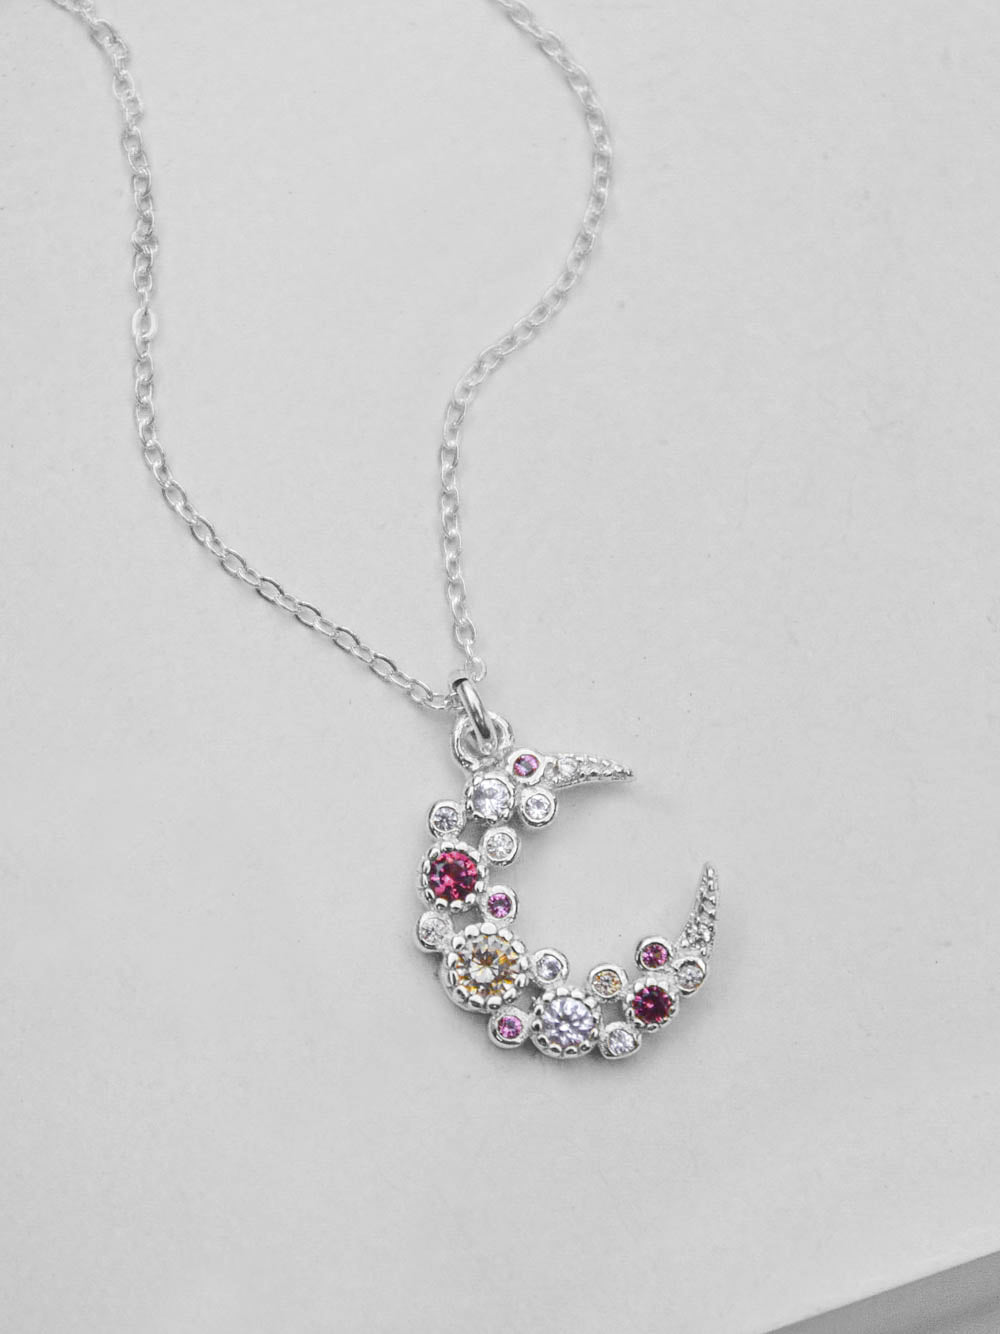 Pink Cluster Moon CZ Charm Silver Necklace  by The Faint Hearted Jewelry